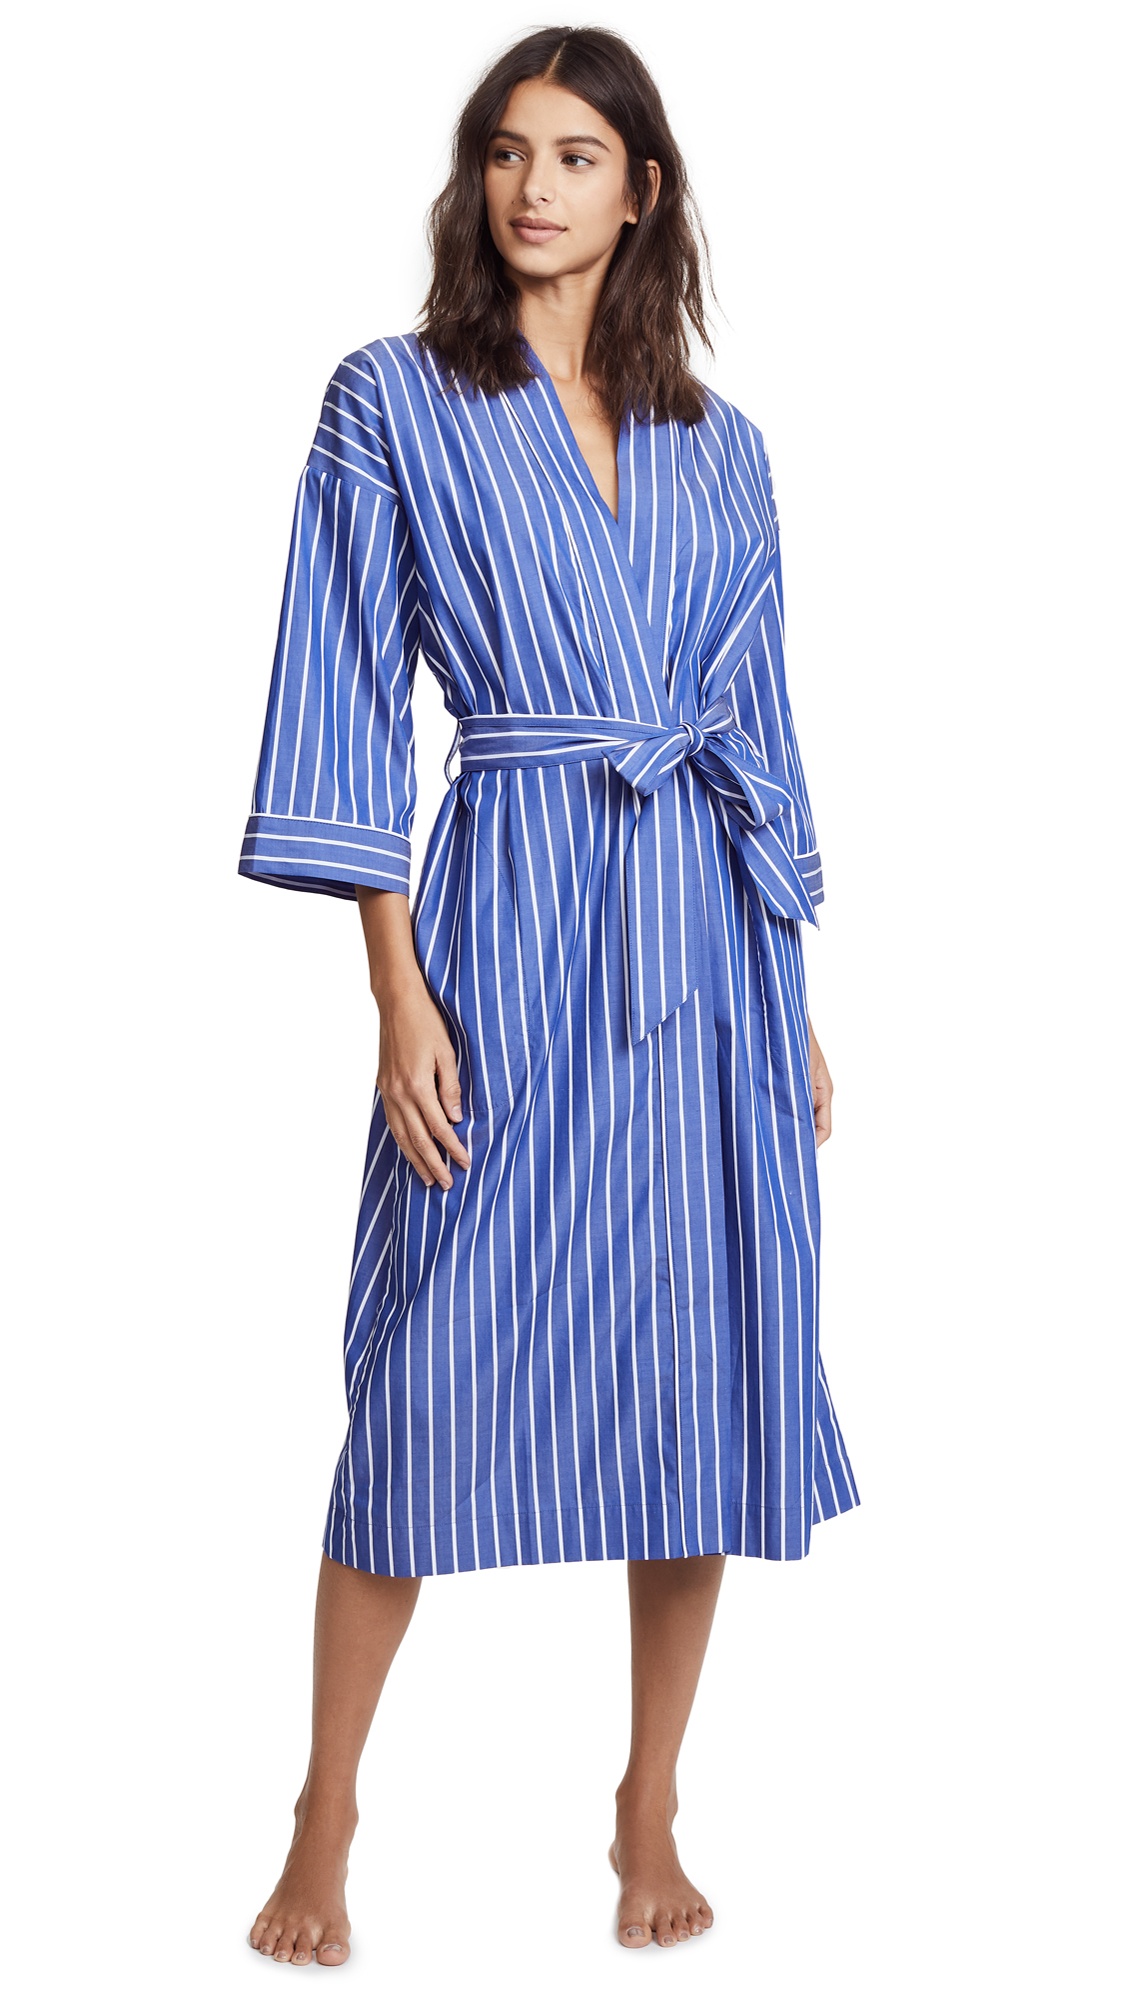 SLEEPY JONES Sadie Striped Cotton Robe, Tie Stripe Blue & White